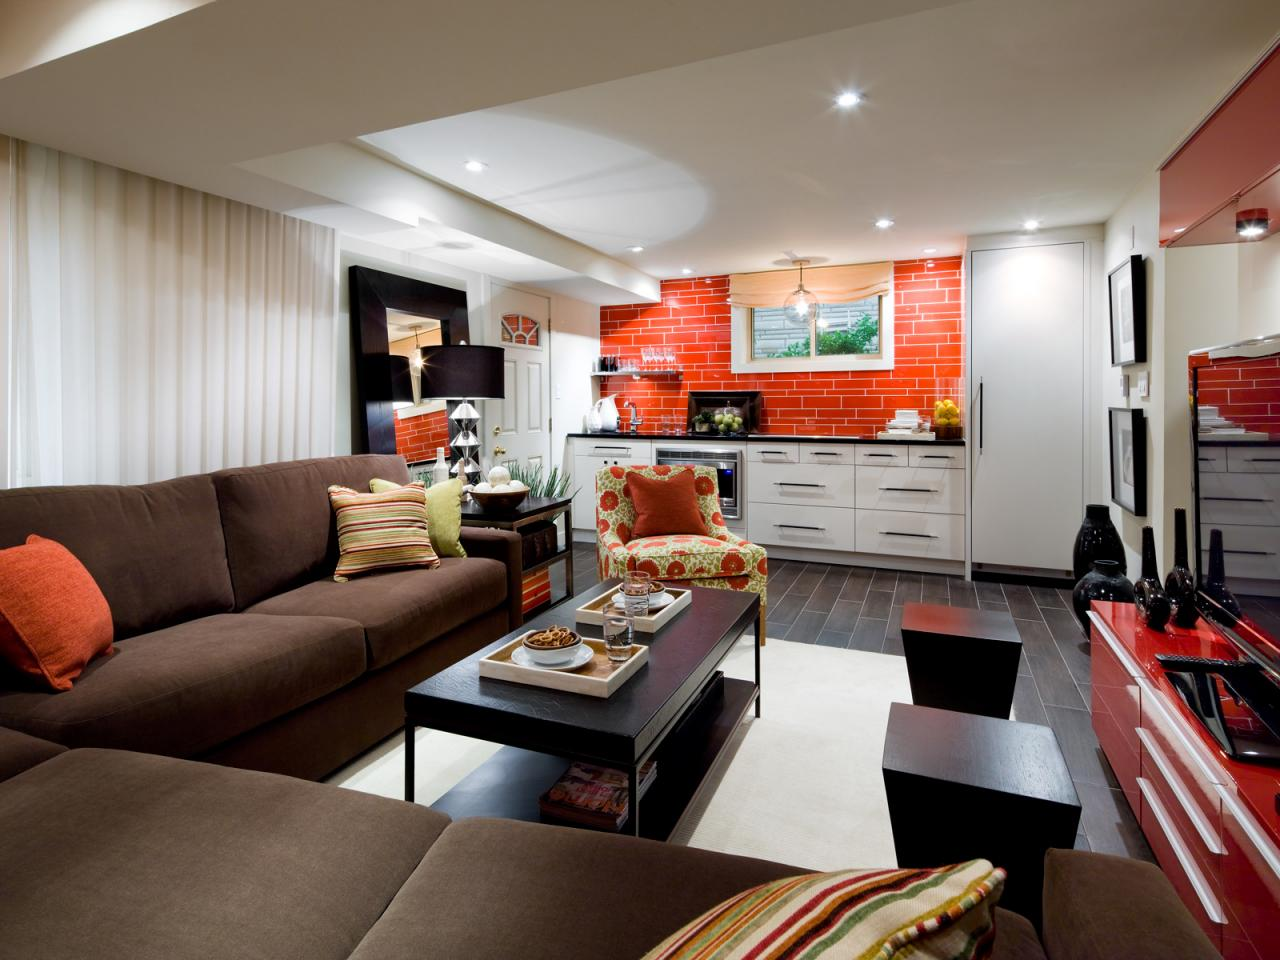 Home Basement Designs Interior Classy Basement Design And Layout  Hgtv Design Decoration